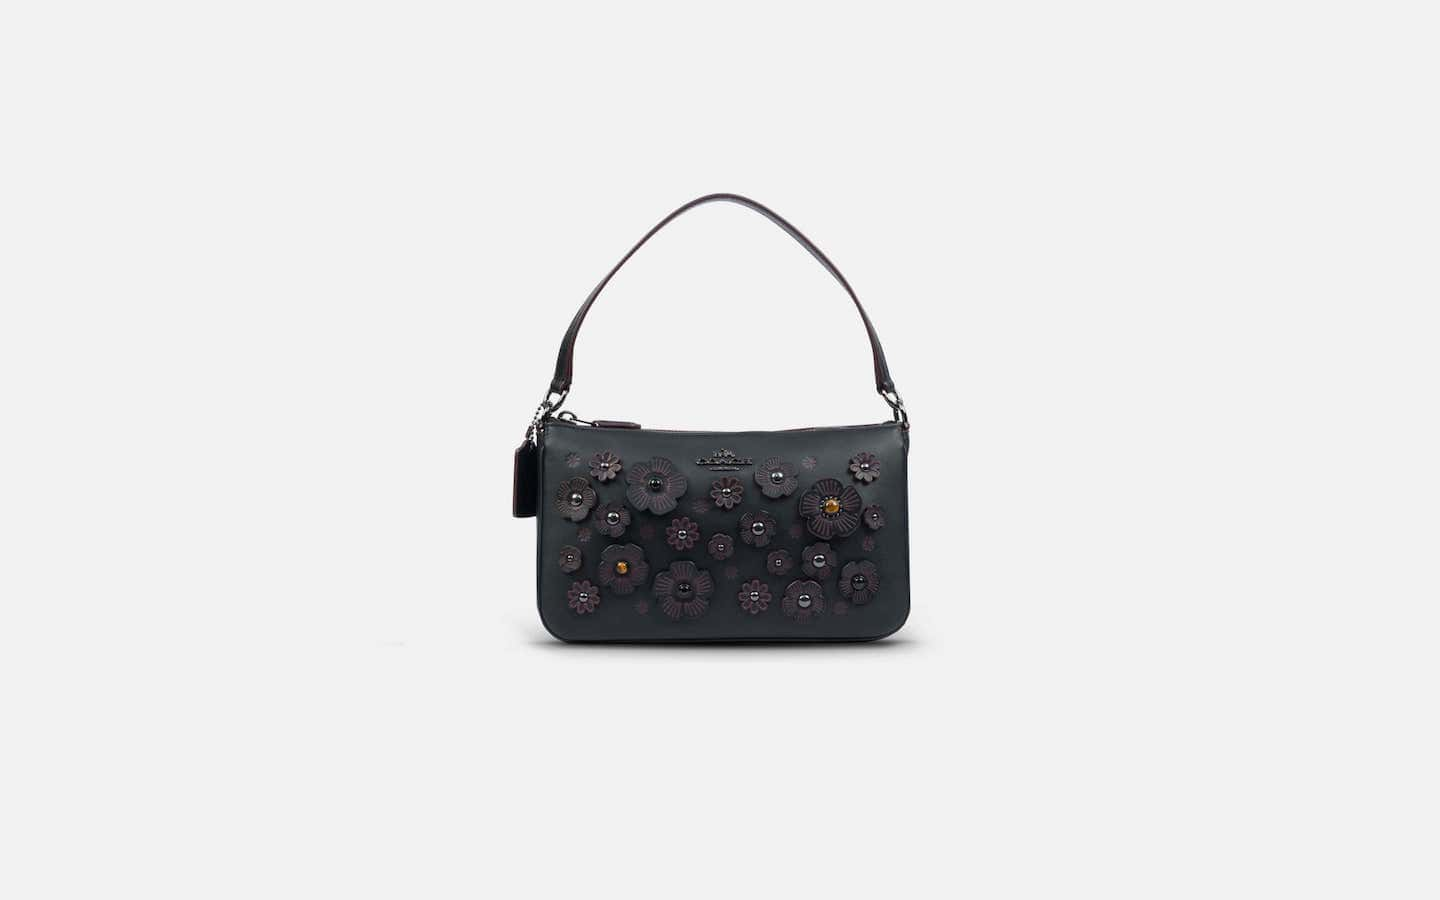 coach-willow-black-front-min-min